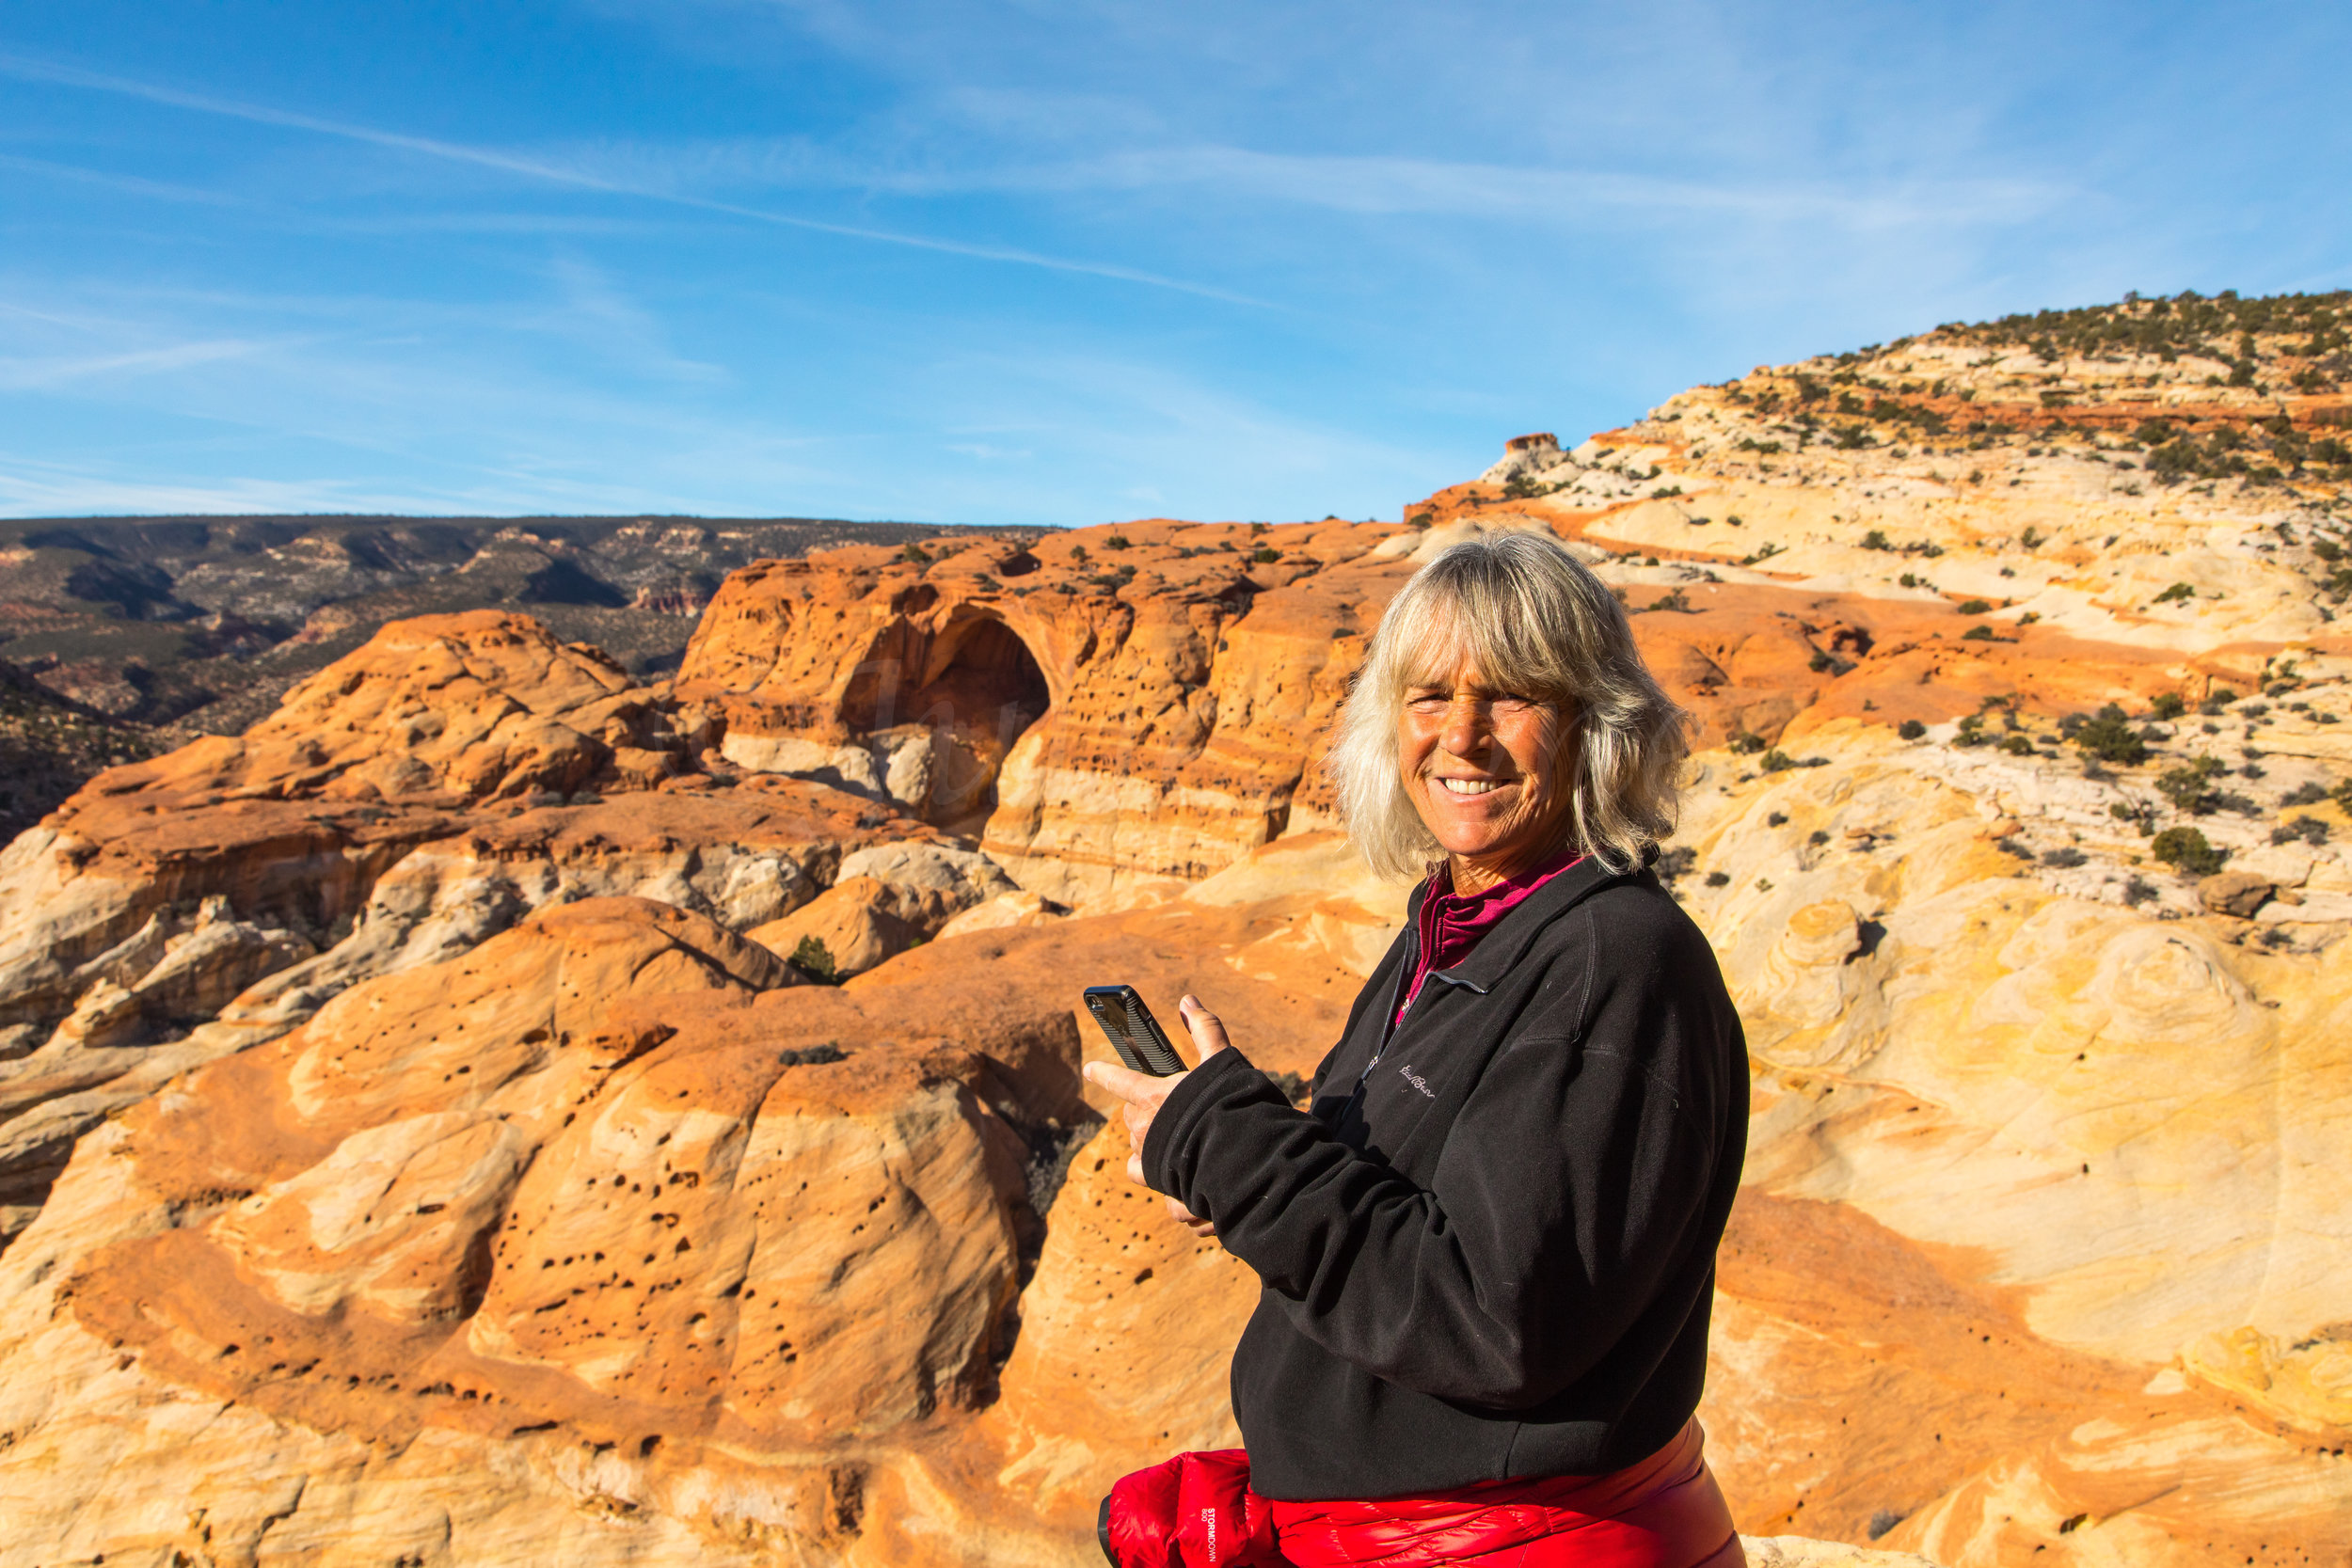 Capitol Reef National Park, Zarita at Cassidy Arch, Image # 0694